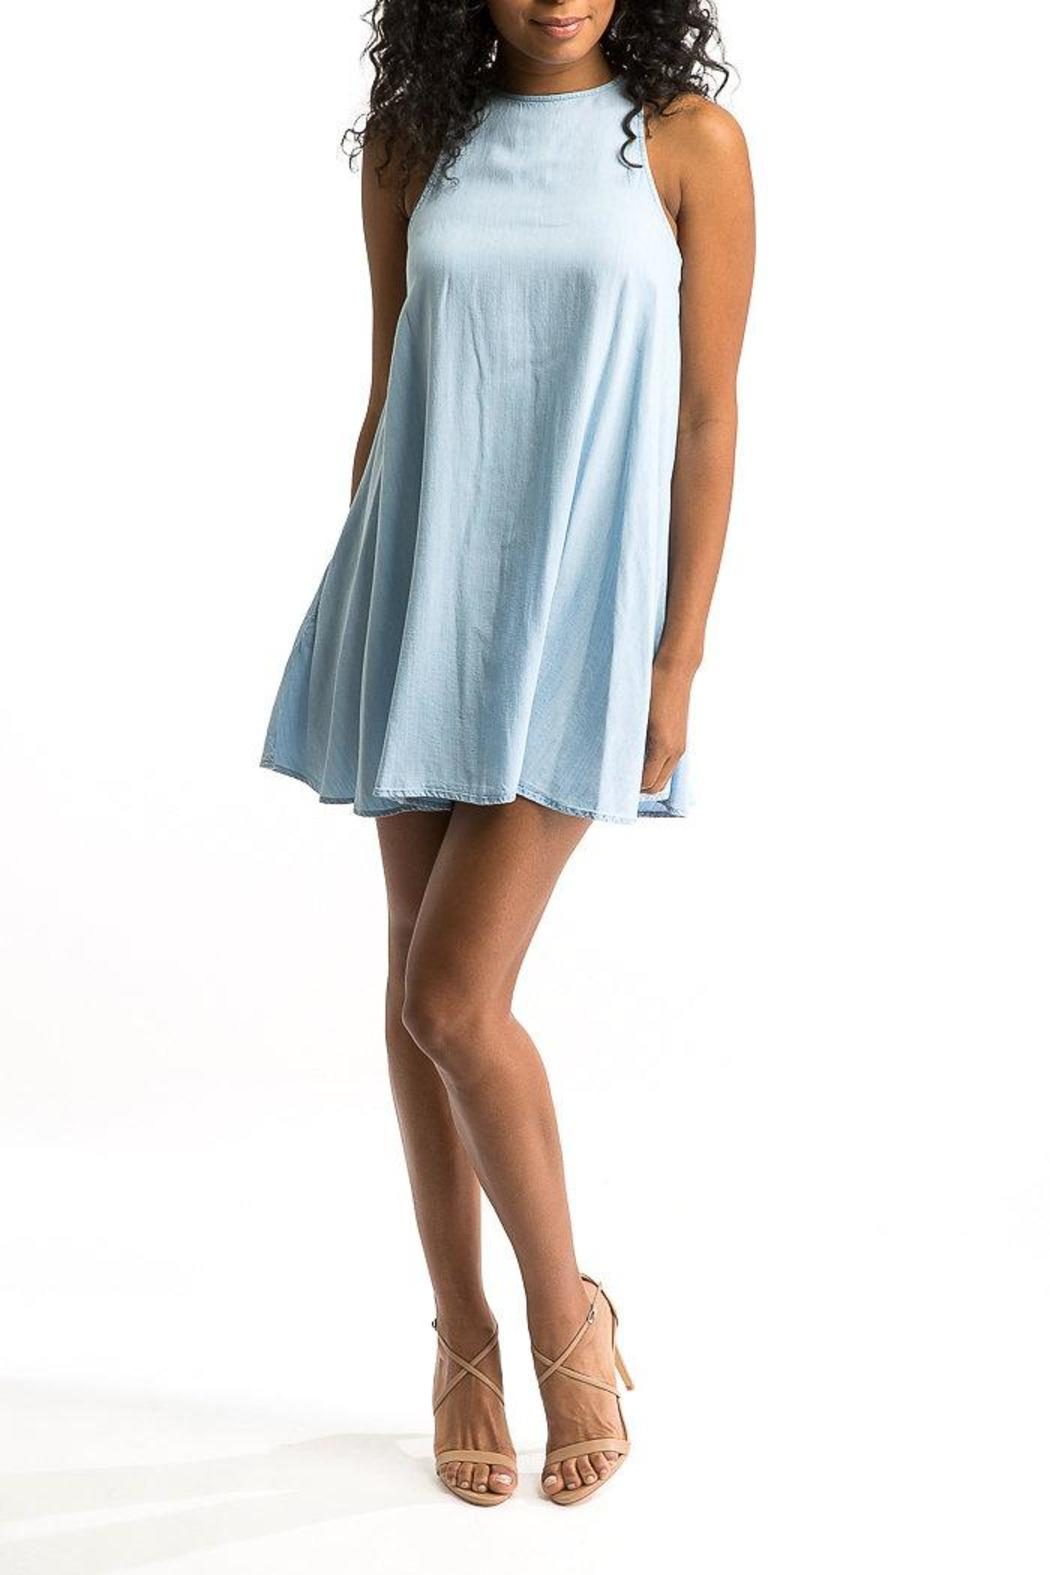 43c2f930913 Rails A-Line Swing Dress from Pennsylvania by Jasmin   Orchid ...